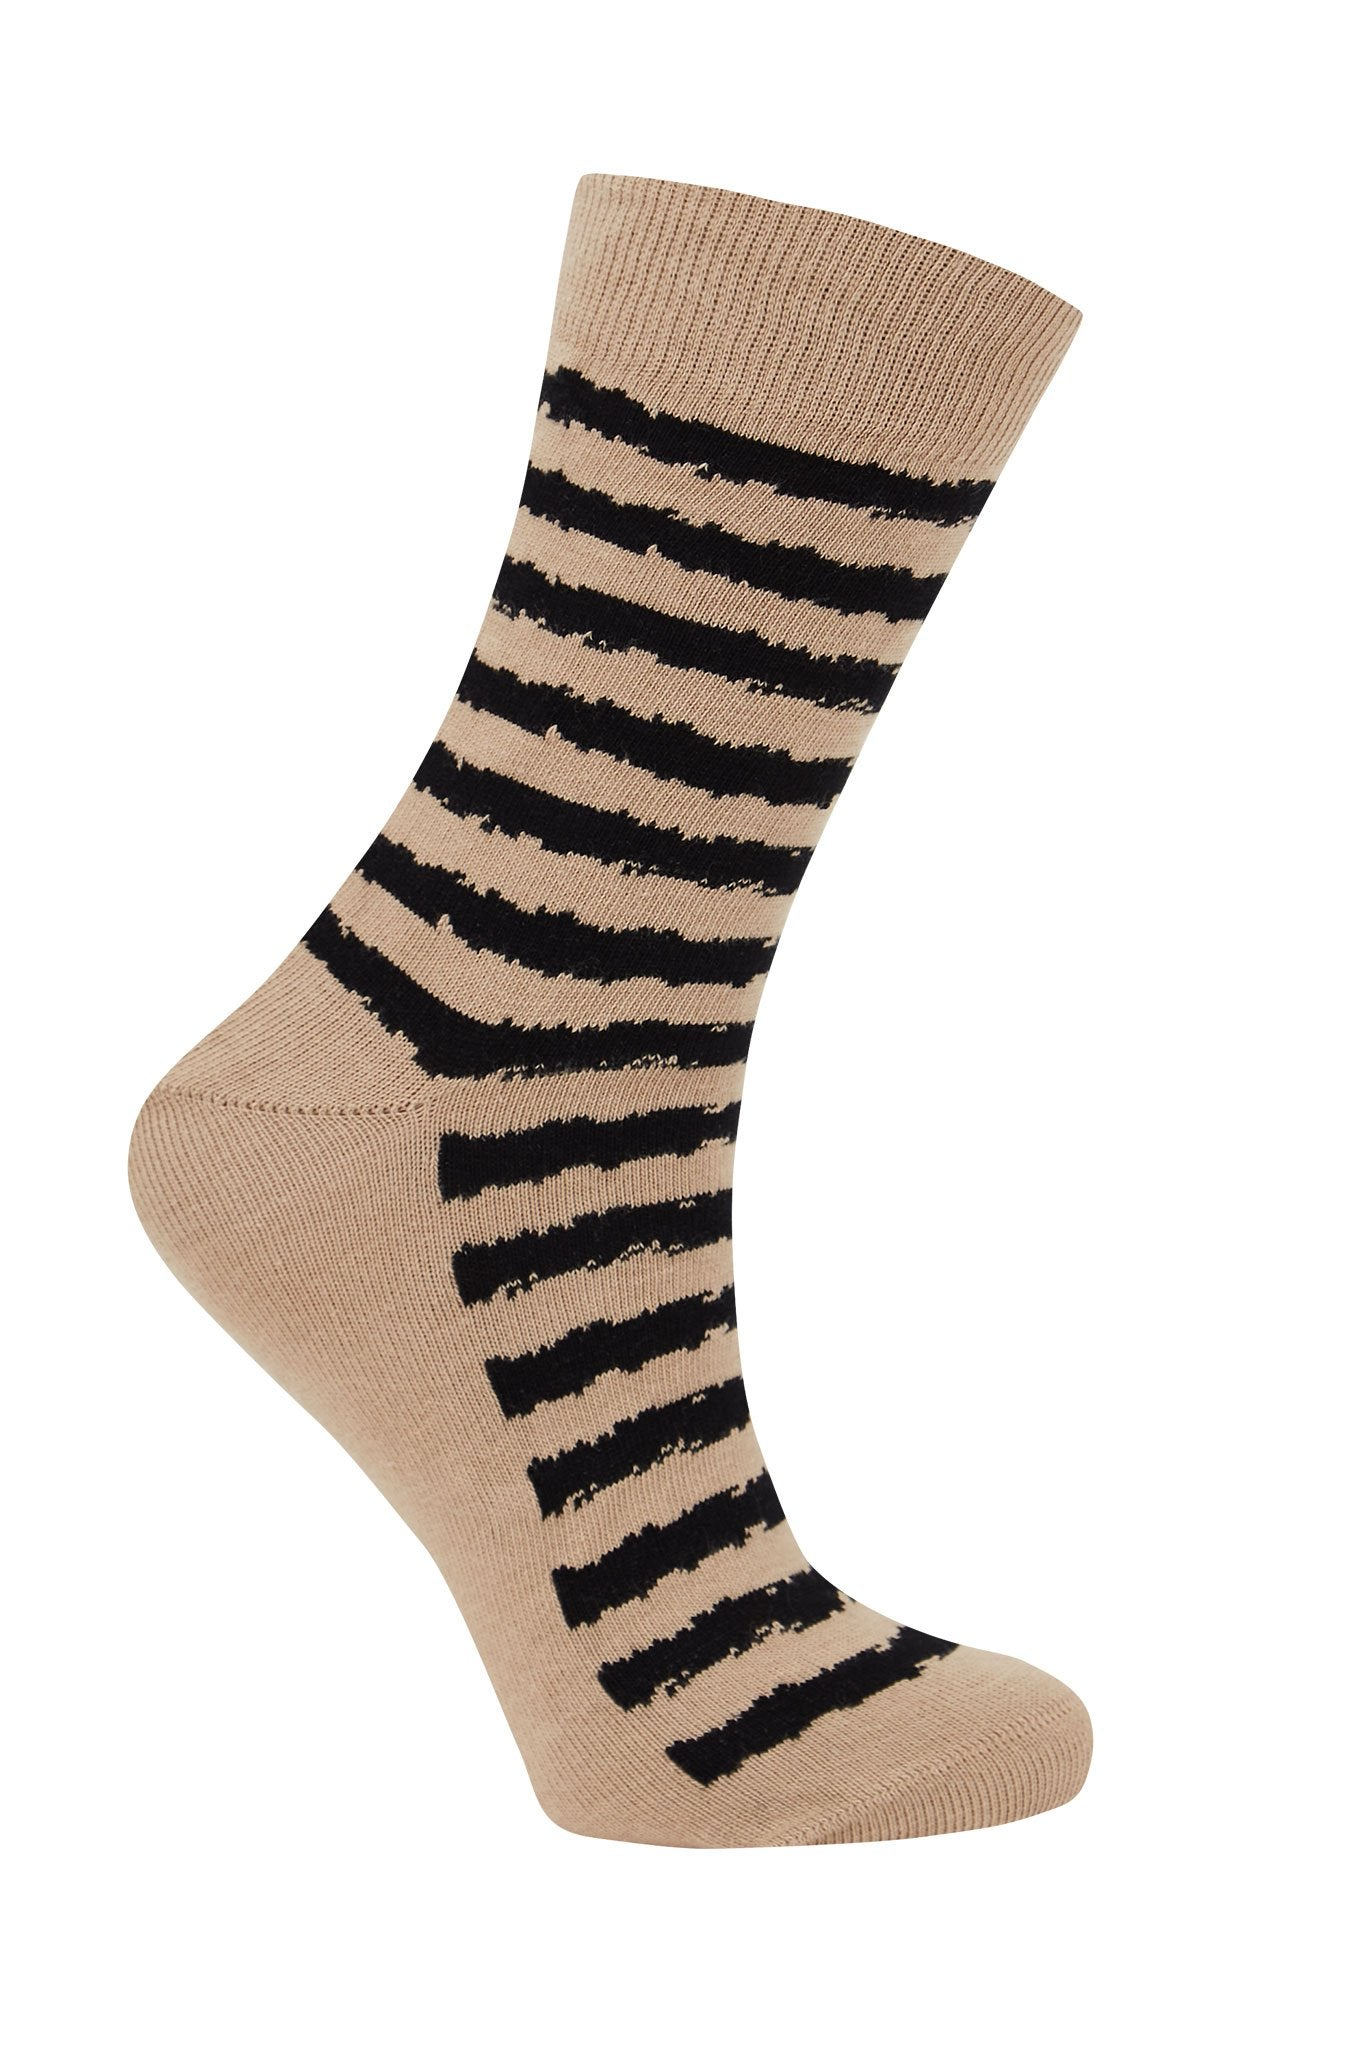 BROKEN BRETTON Sand - GOTS Organic Cotton Socks